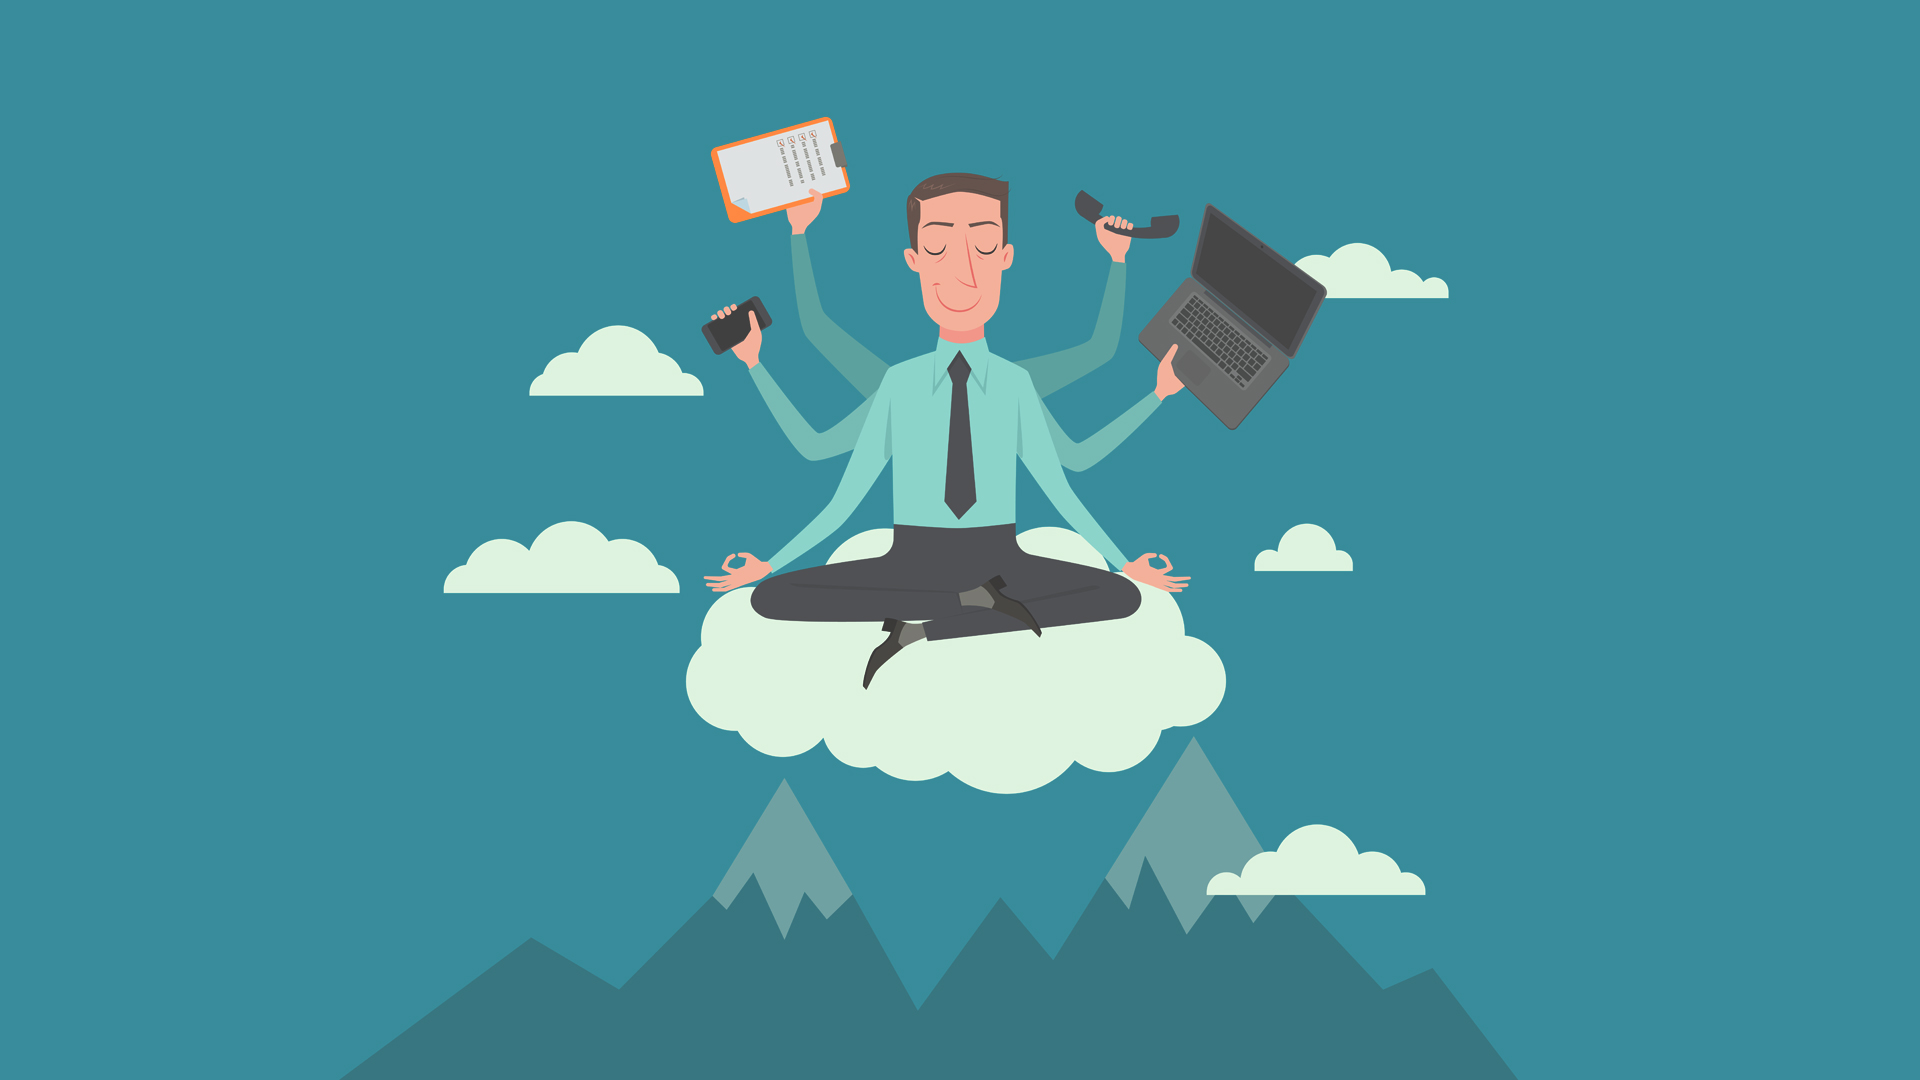 Businessman meditating in the sky